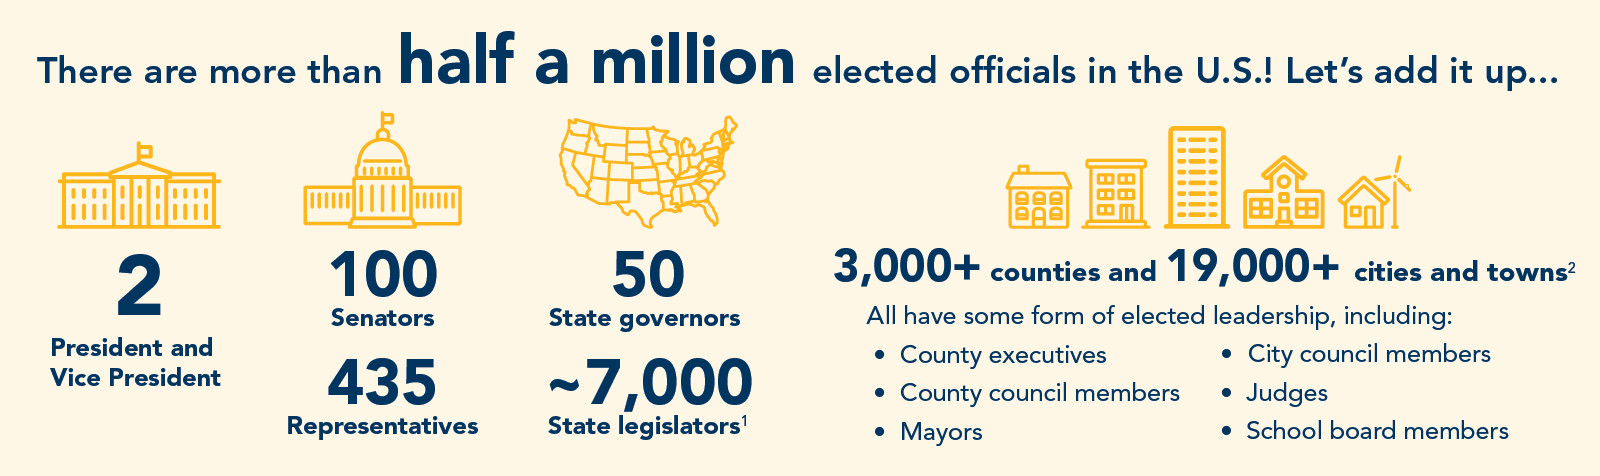 There are more than half a million elected officials in the United States.